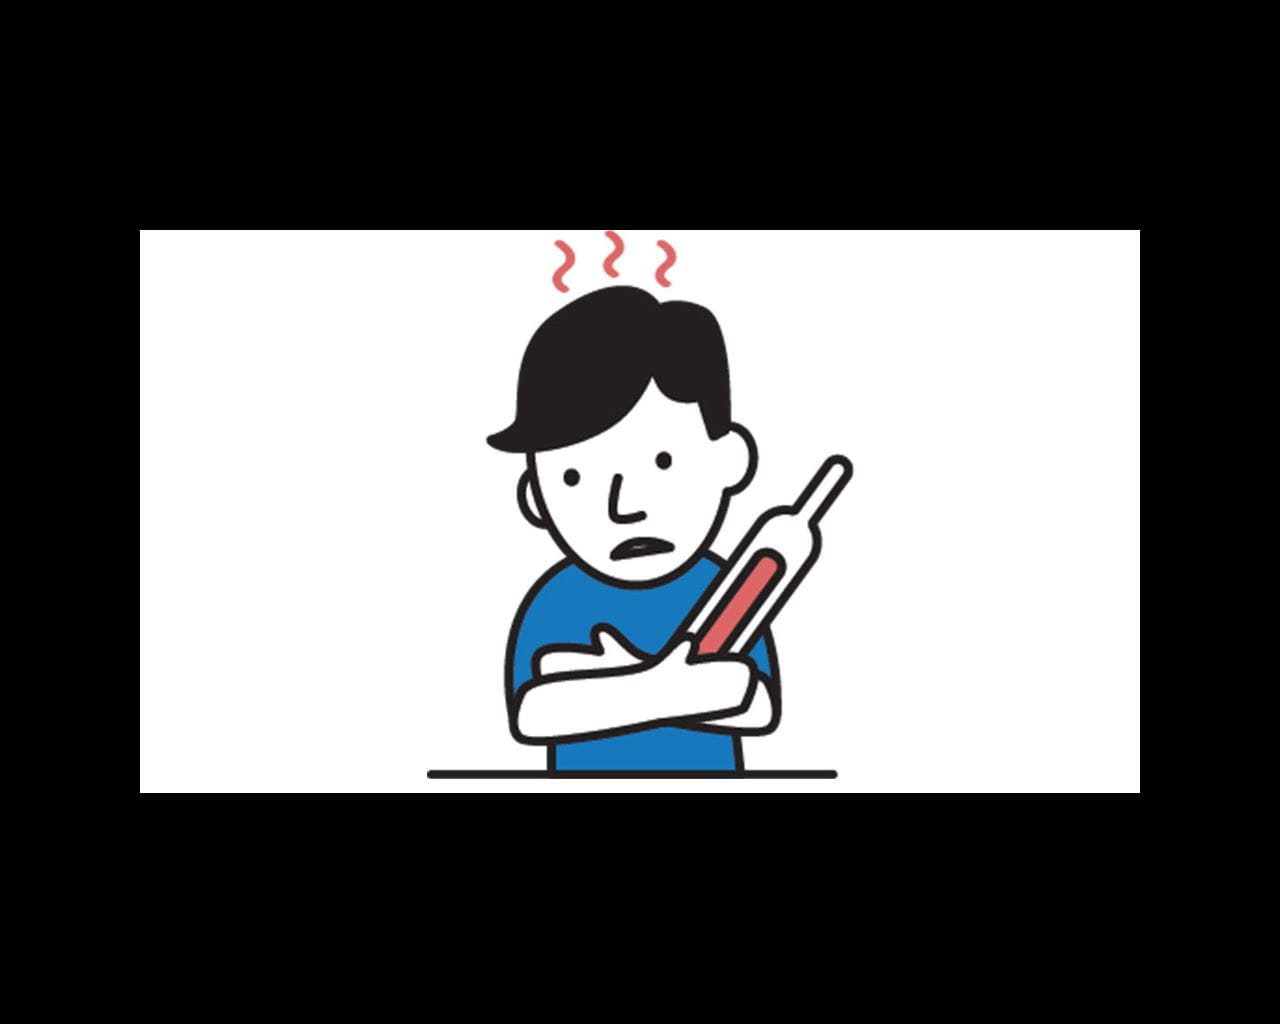 person with fever cartoon